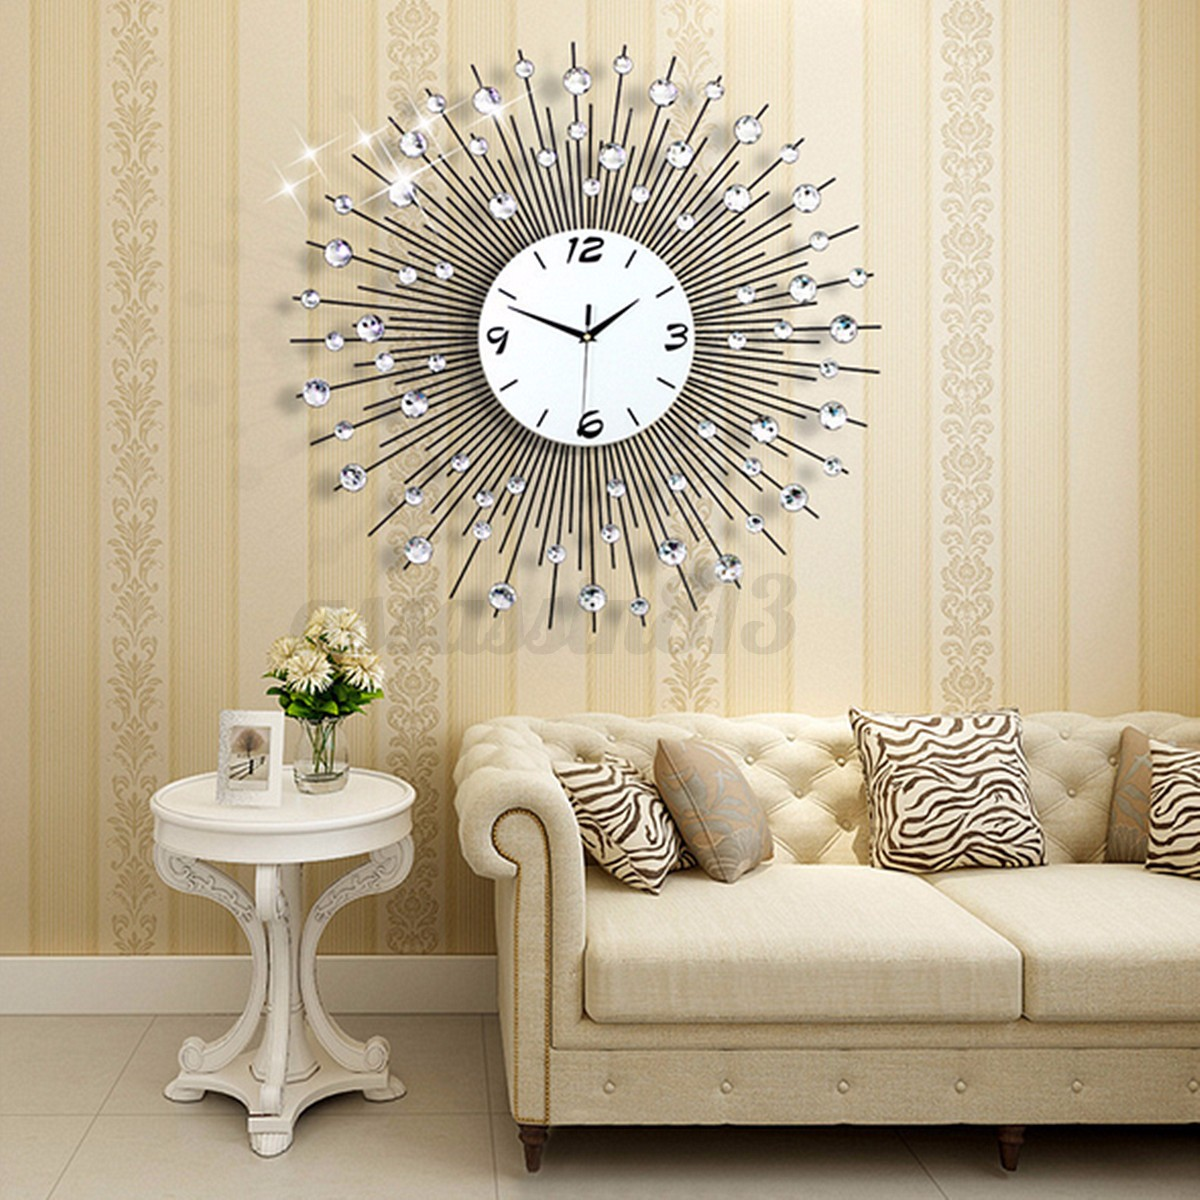 Where To Hang Wall Clock In Living Room Luxury Scenic Iron Art Metal Living Room Round Diamond